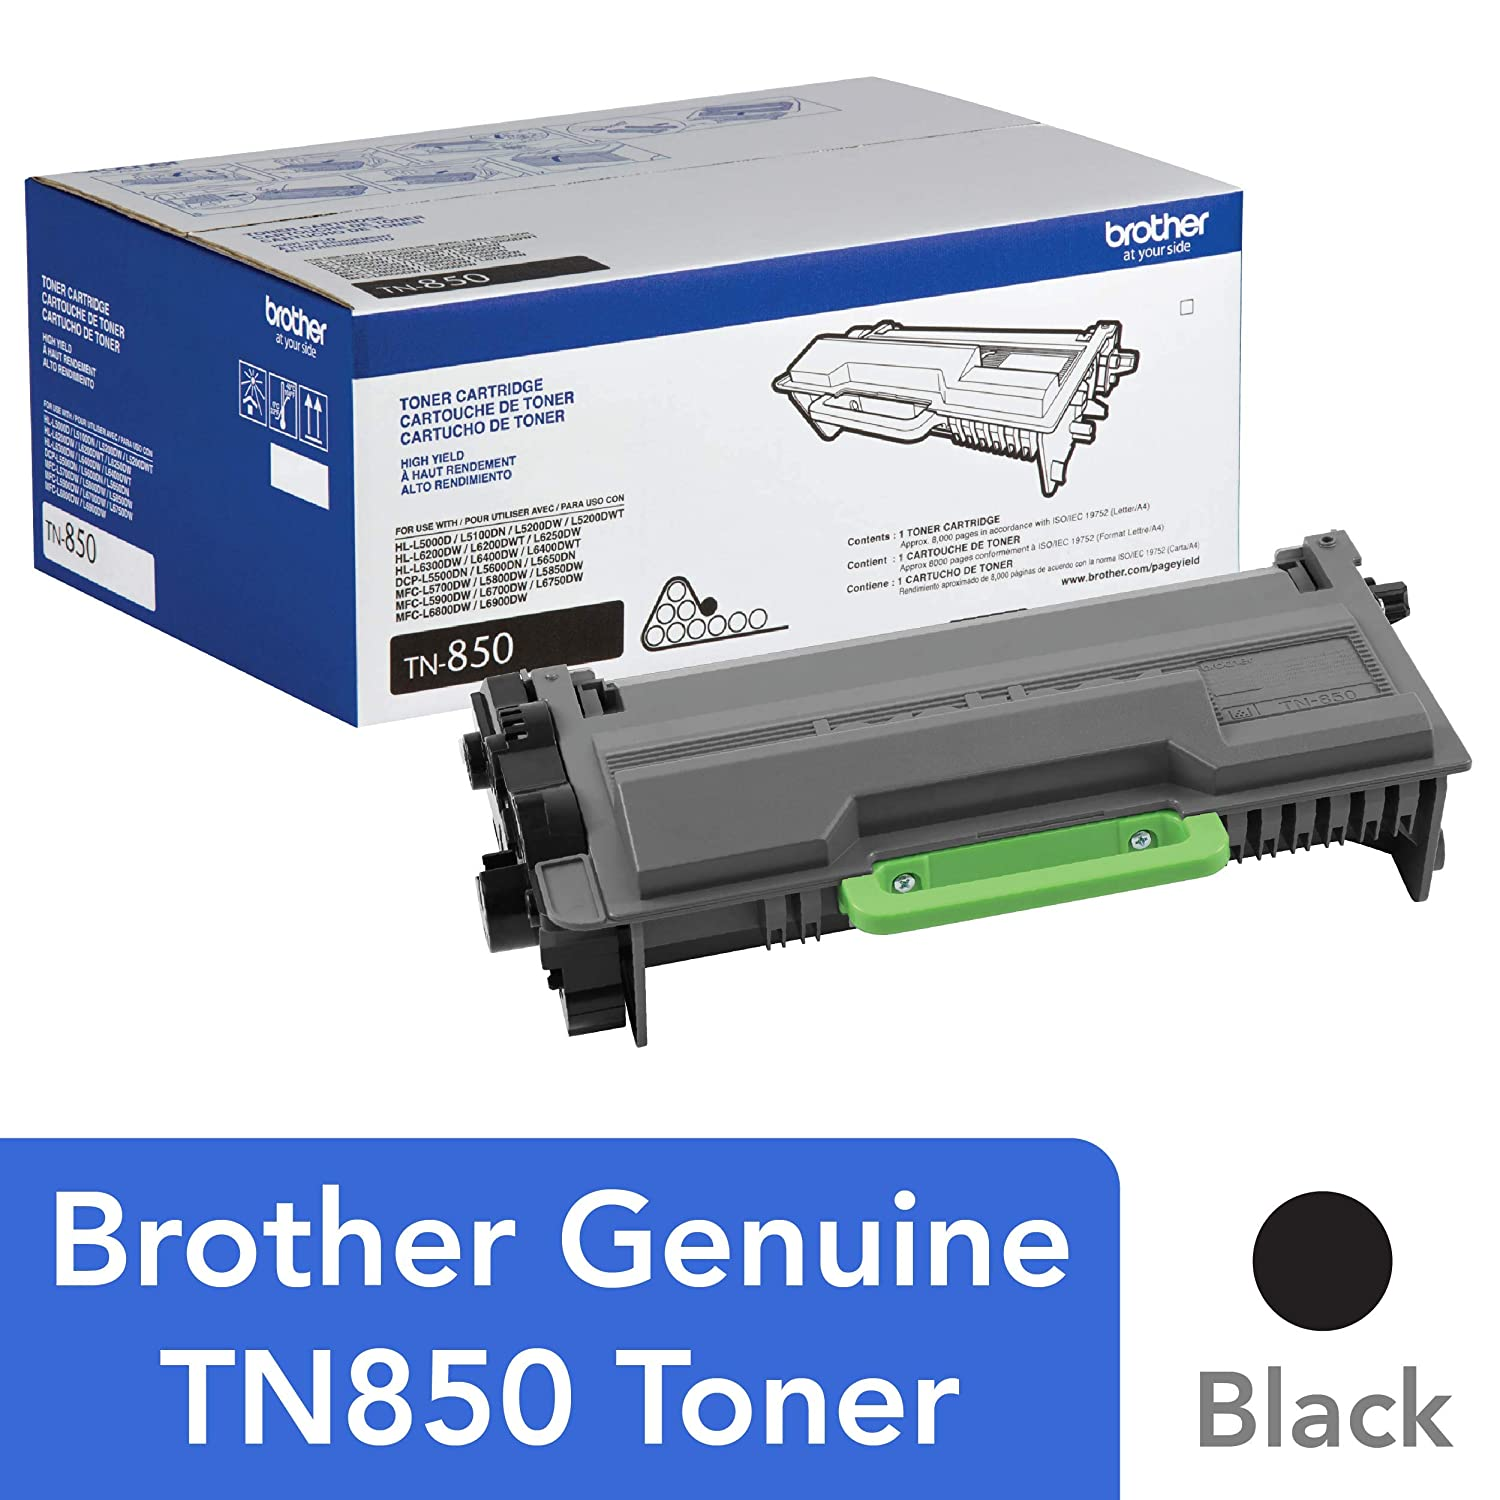 Brother Genuine High Yield Toner Cartridge, TN850, Replacement Black Toner, Page Yield Up To 8,000 Pages, Amazon Dash Replenishment Cartridge